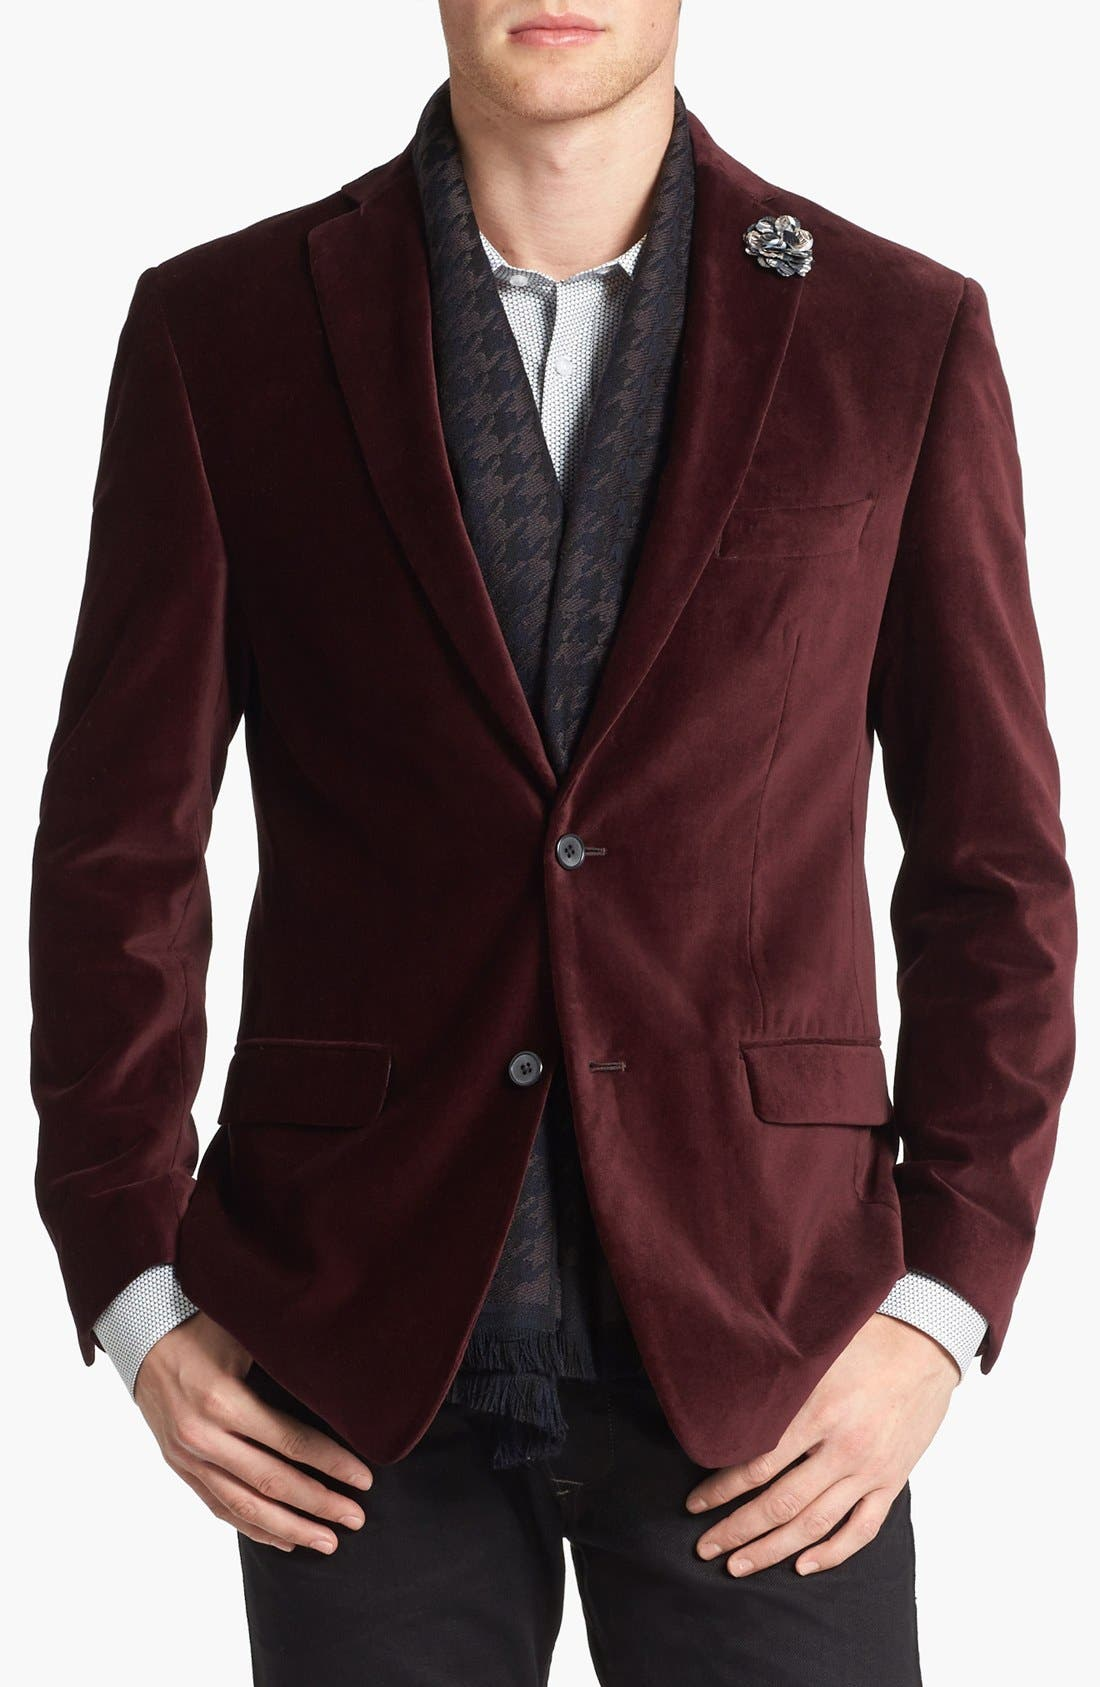 Main Image - Michael Kors Trim Fit Velvet Blazer